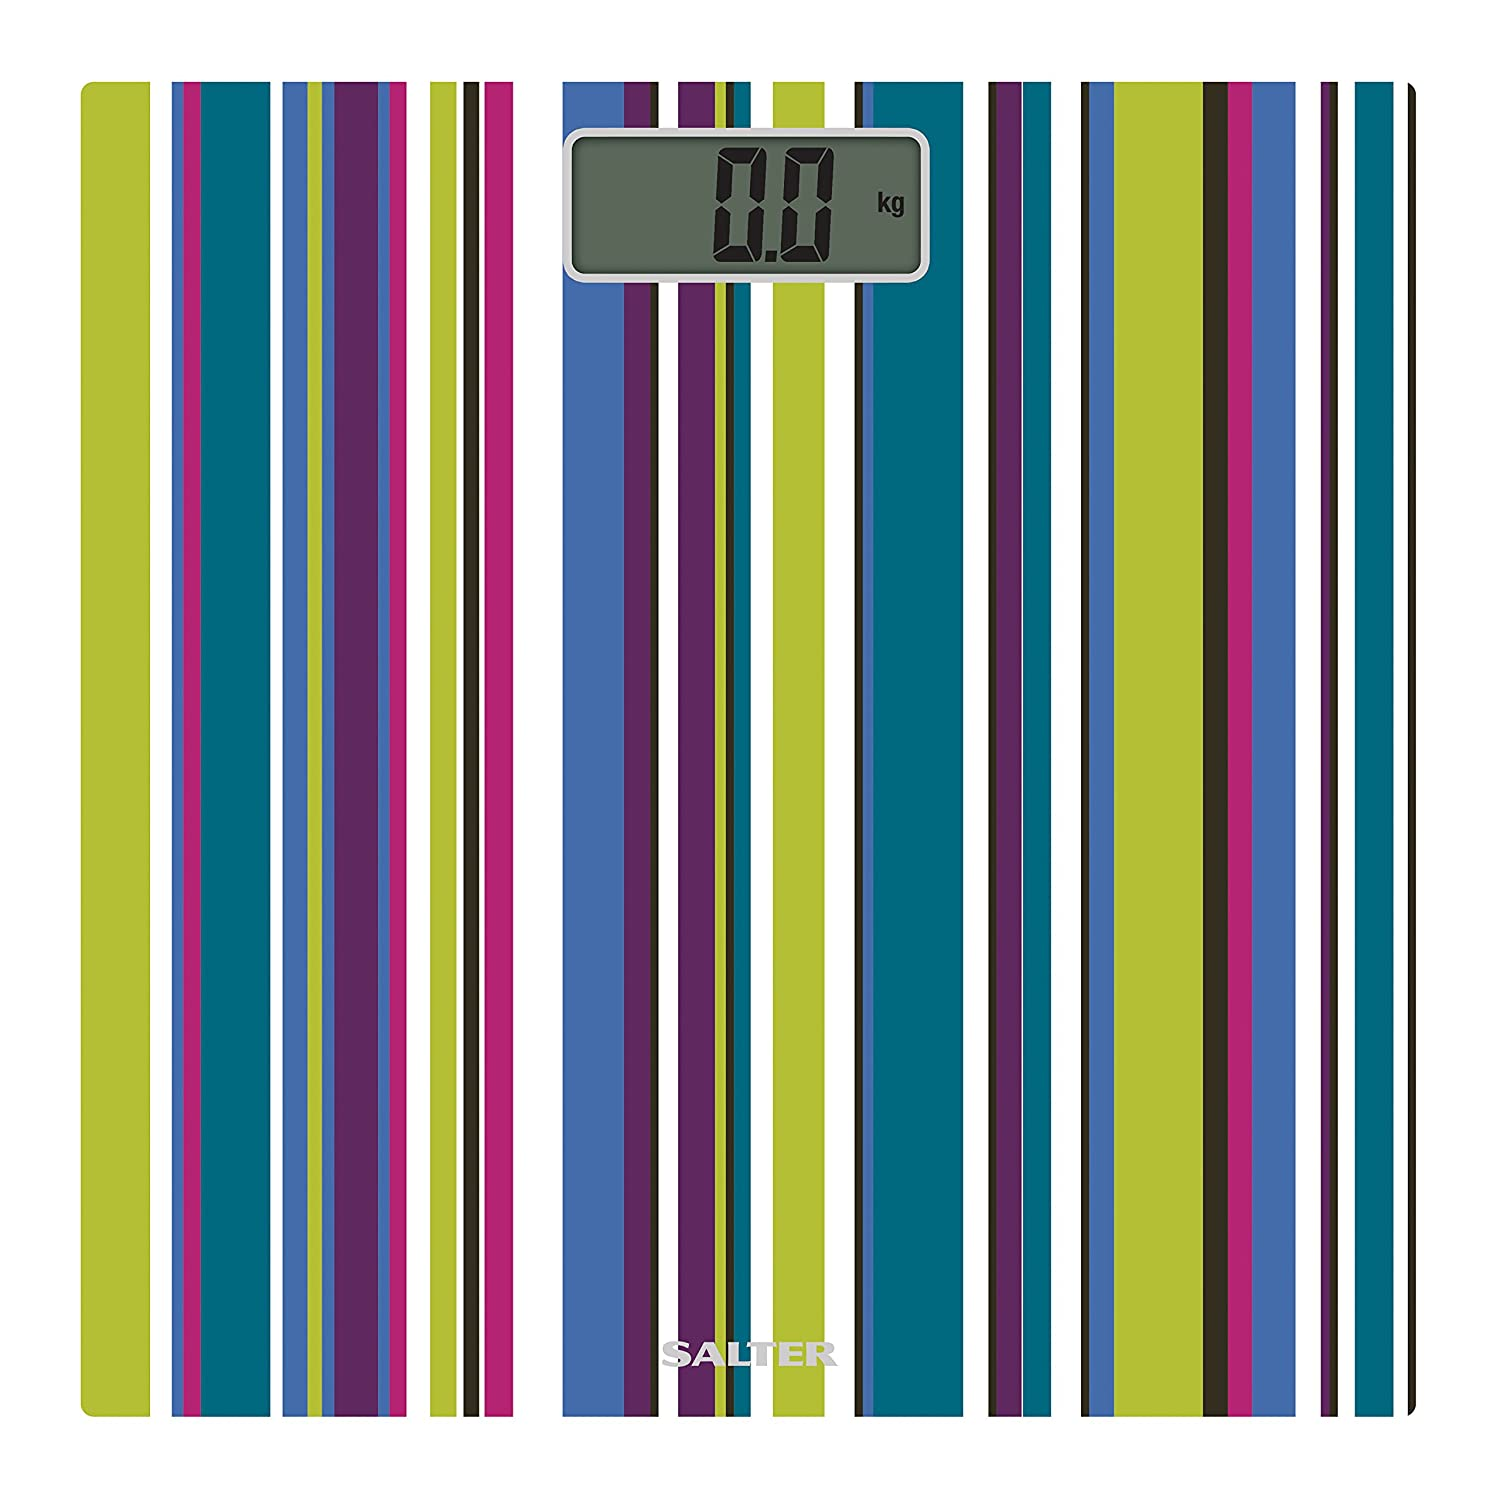 Salter Electronic Striped Bathroom Scales